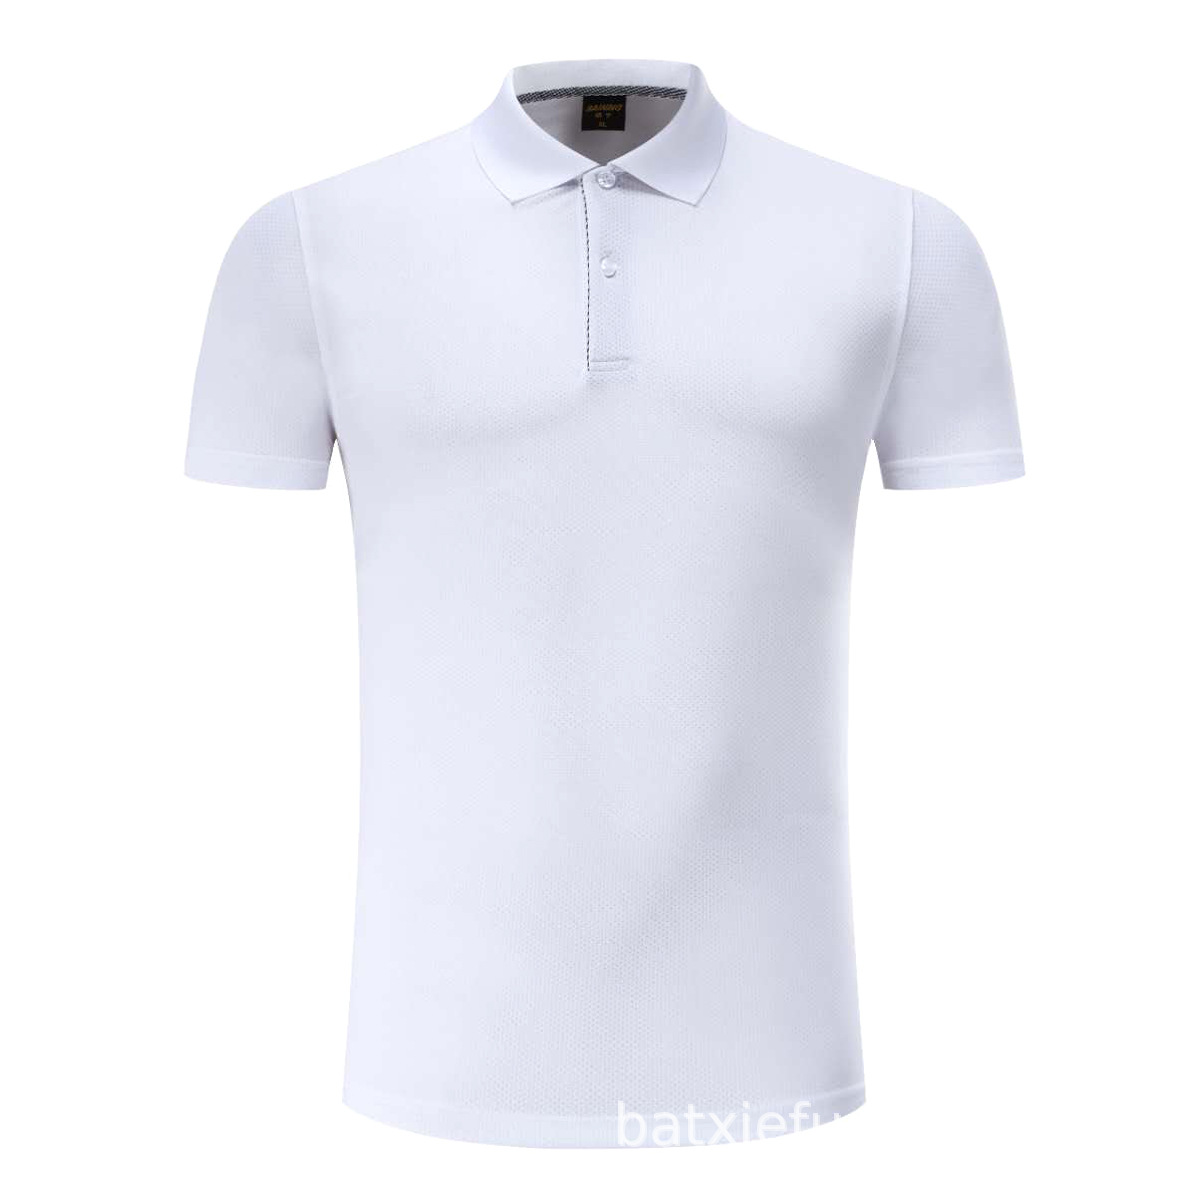 Enterprise Group Clothes Short Sleeve Fold-down Collar   Polo   Cultural Shirt Work Clothes Customizable Business Casual Printed Log